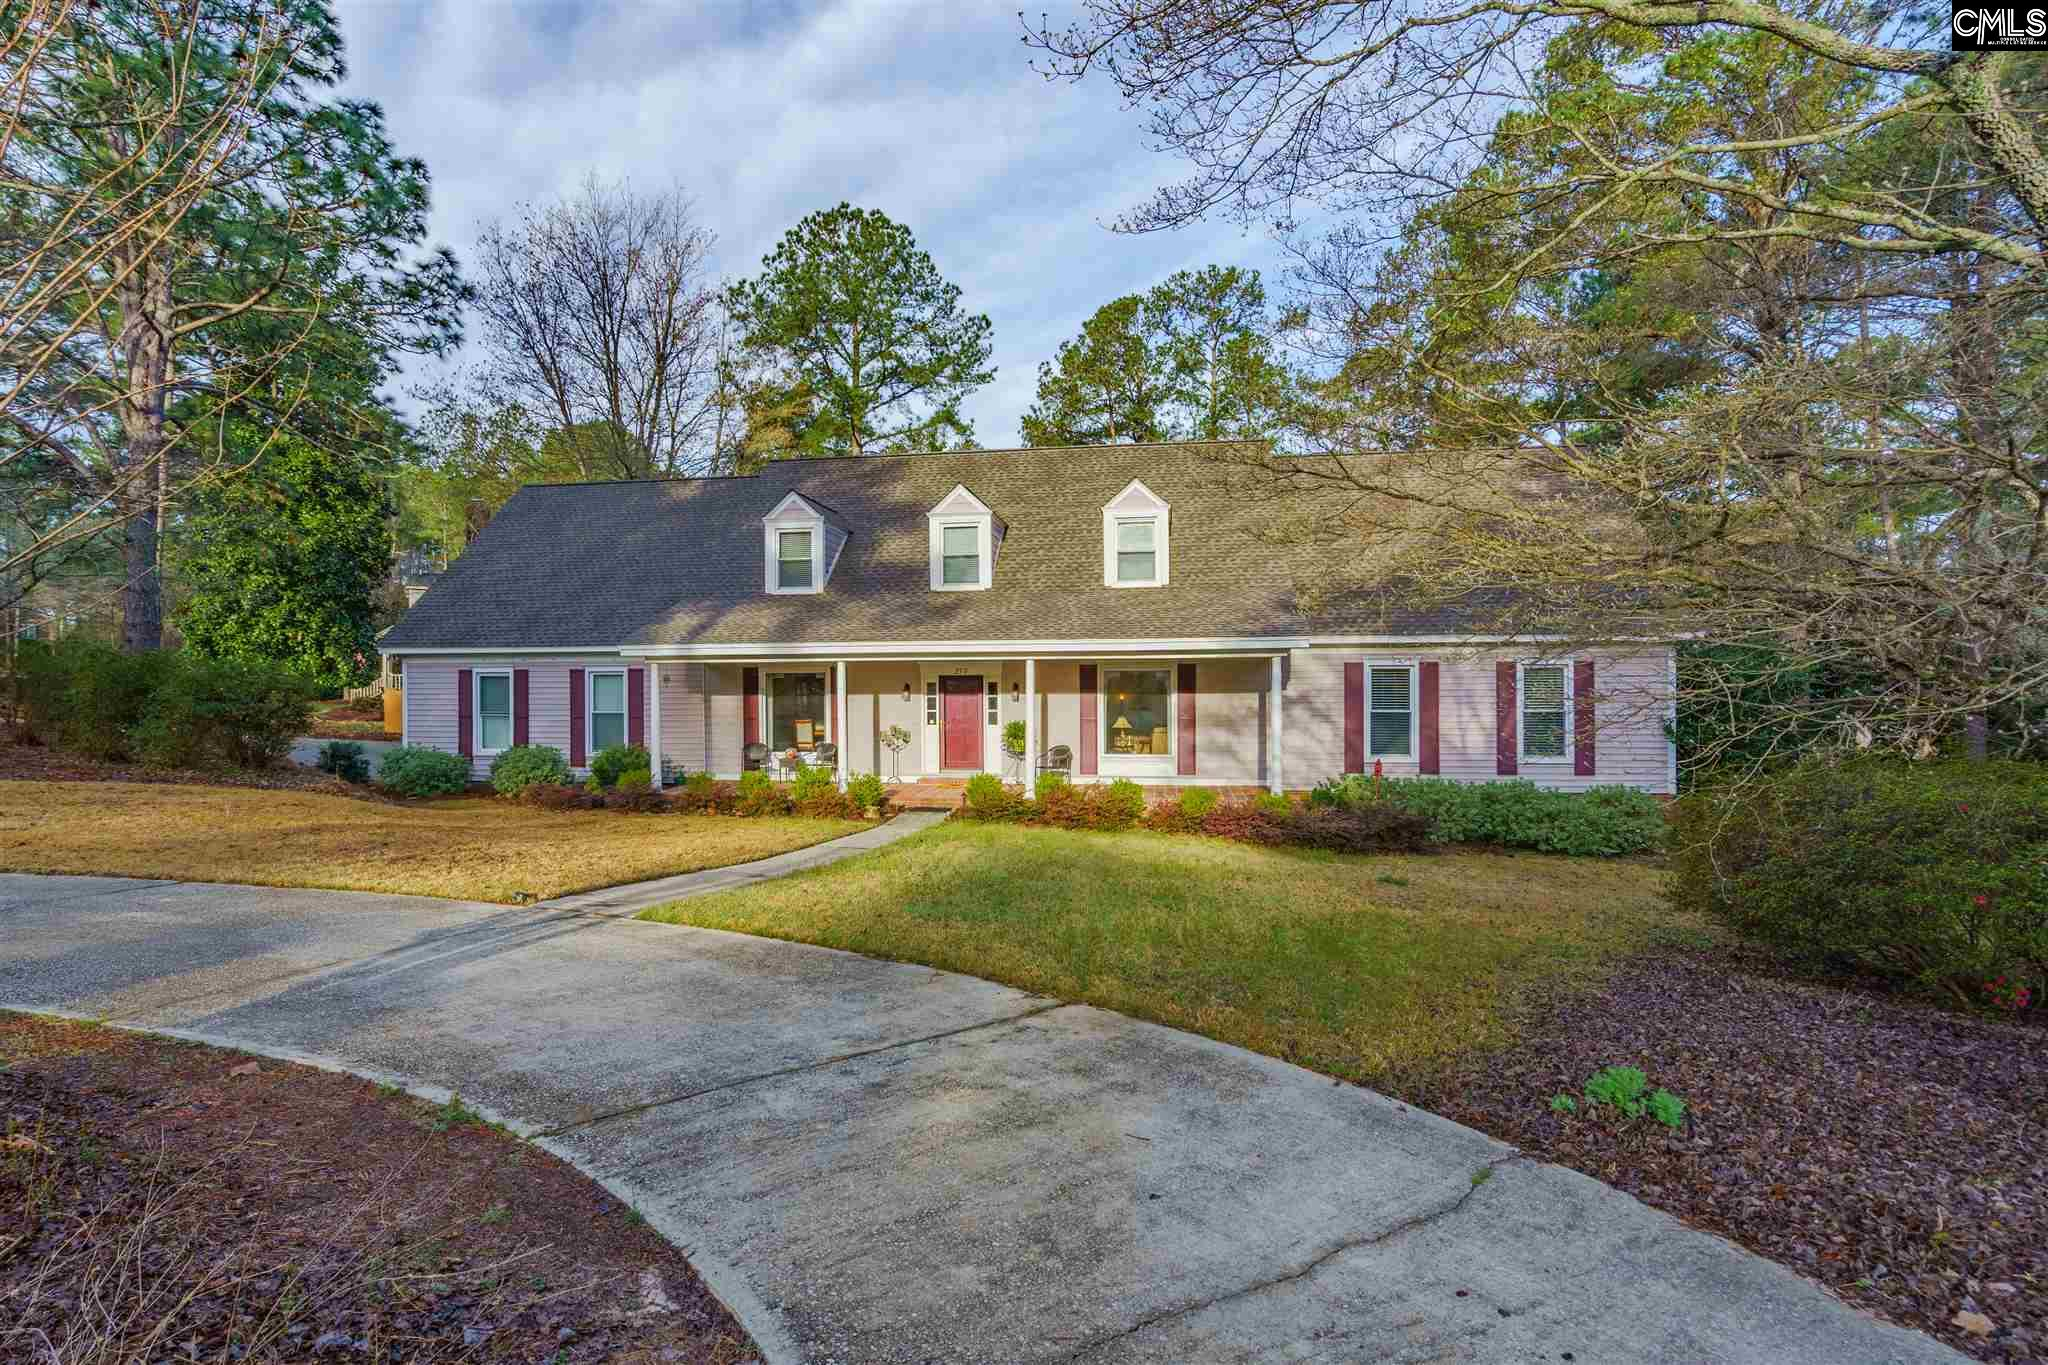 213 Leaning Tree Columbia, SC 29223-3008